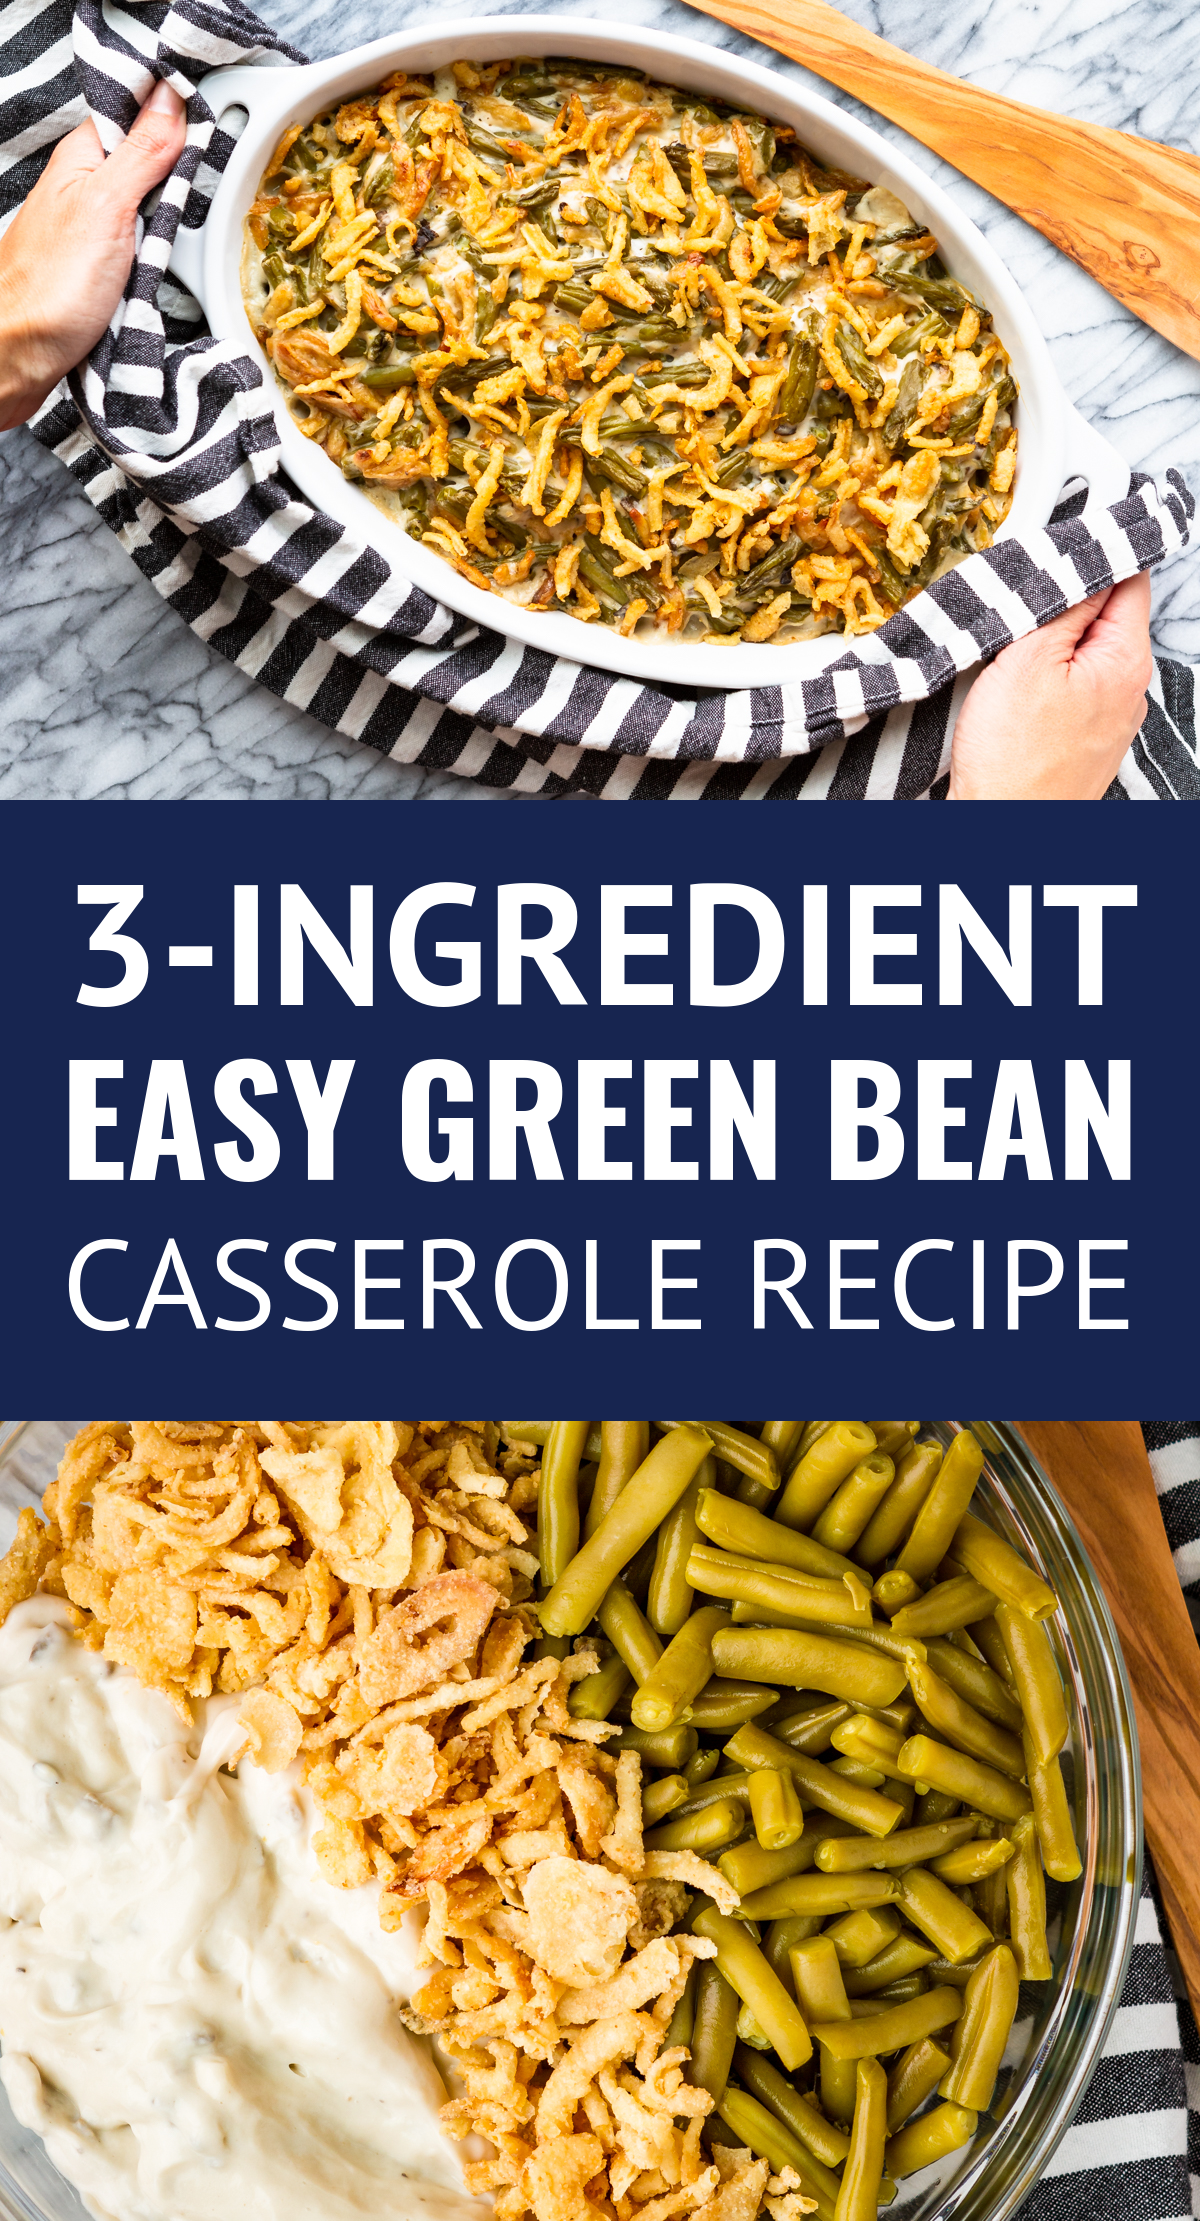 Easiest Ever 3-Ingredient Green Bean Casserole Recipe images